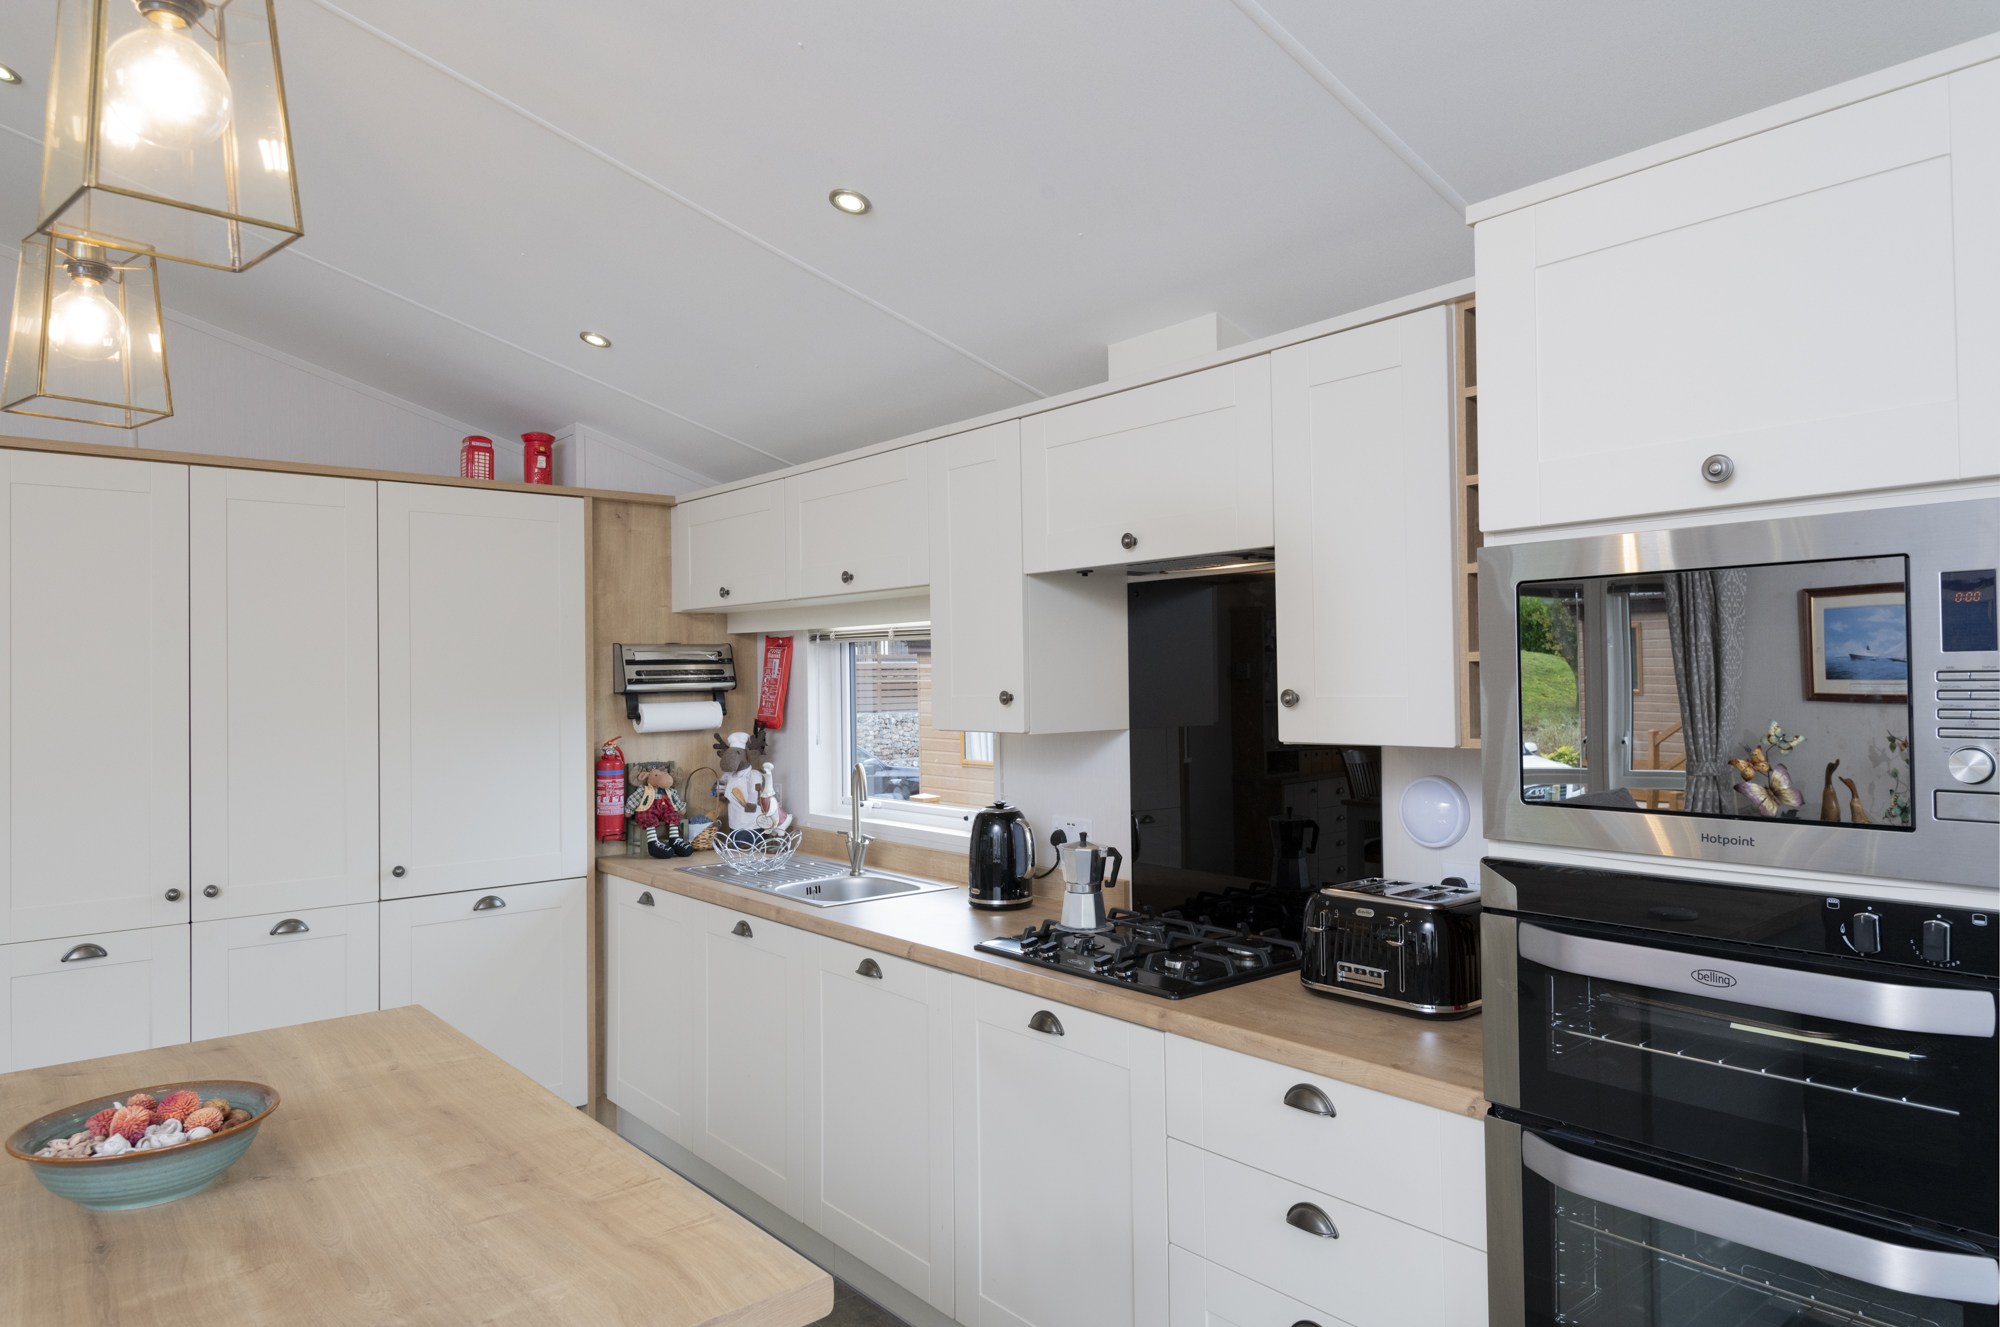 The kitchen in the Lakeside Haven lodge